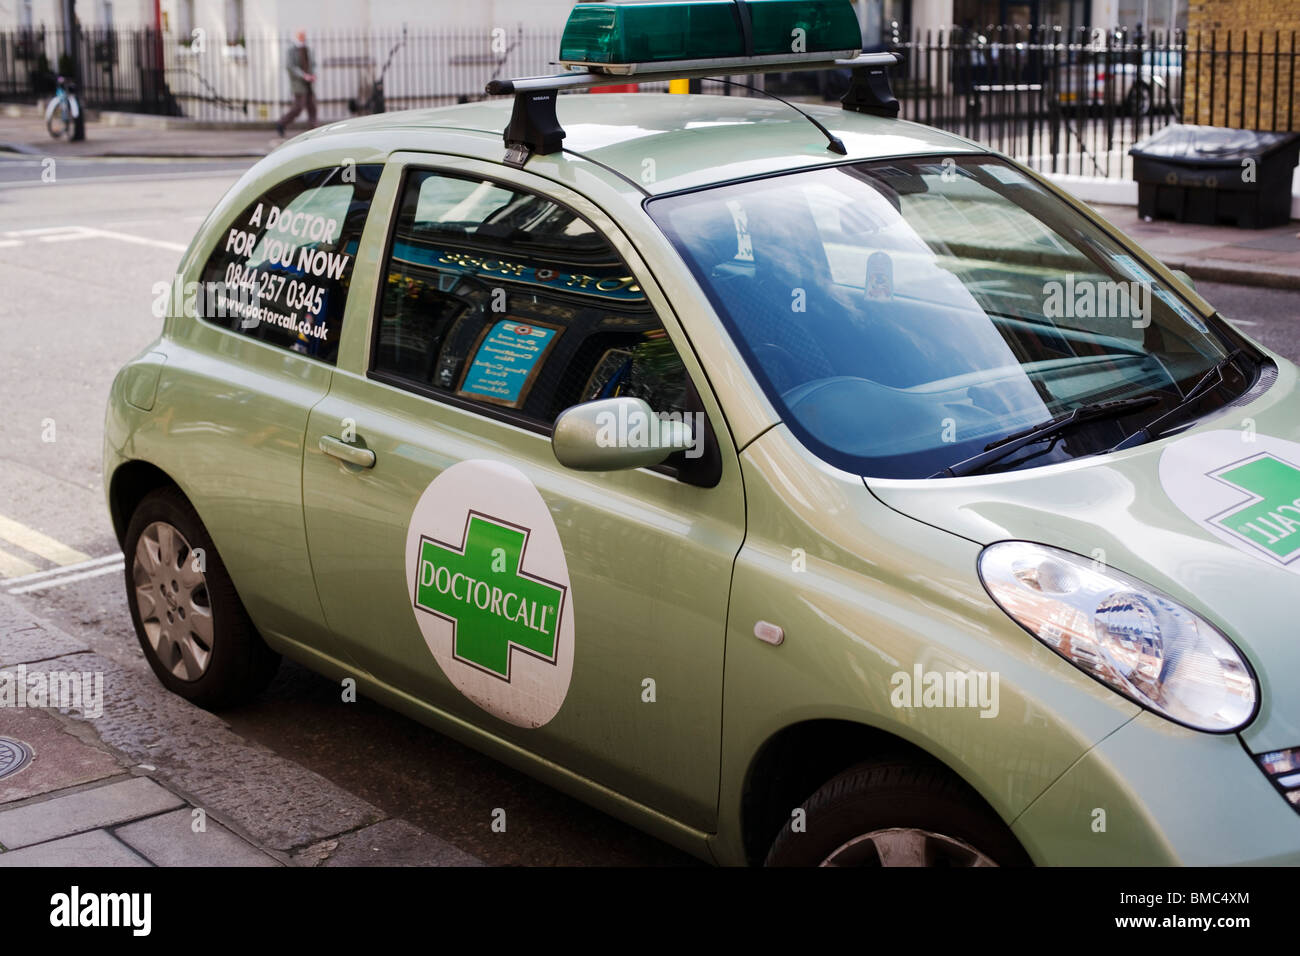 Doctorcall car,Private Medical emergencies, Manchester Street, London, England, UK, Europe - Stock Image